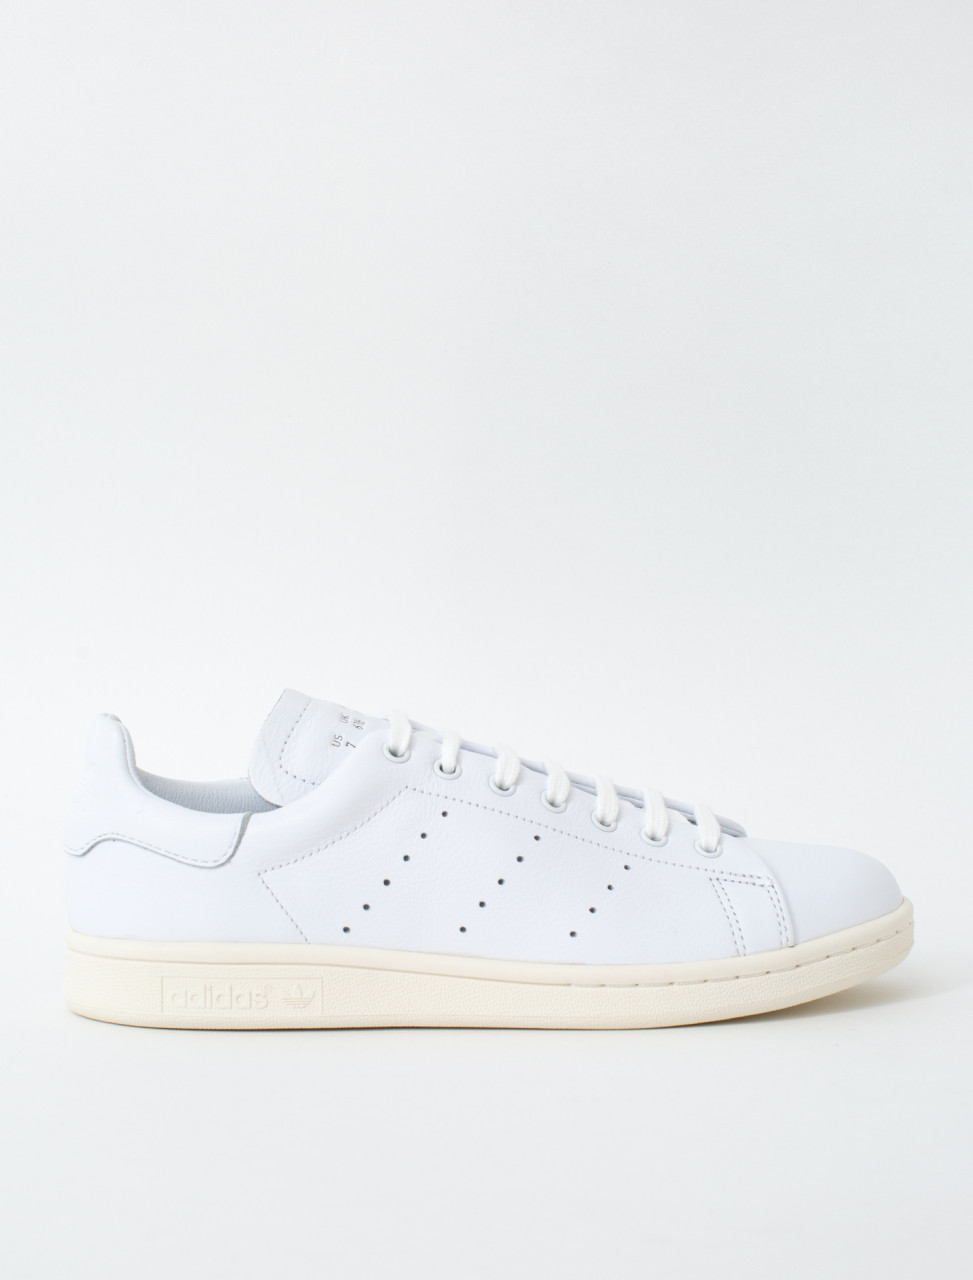 competitive price a363b cdbfd Adidas Stan Smith Recon Sneaker